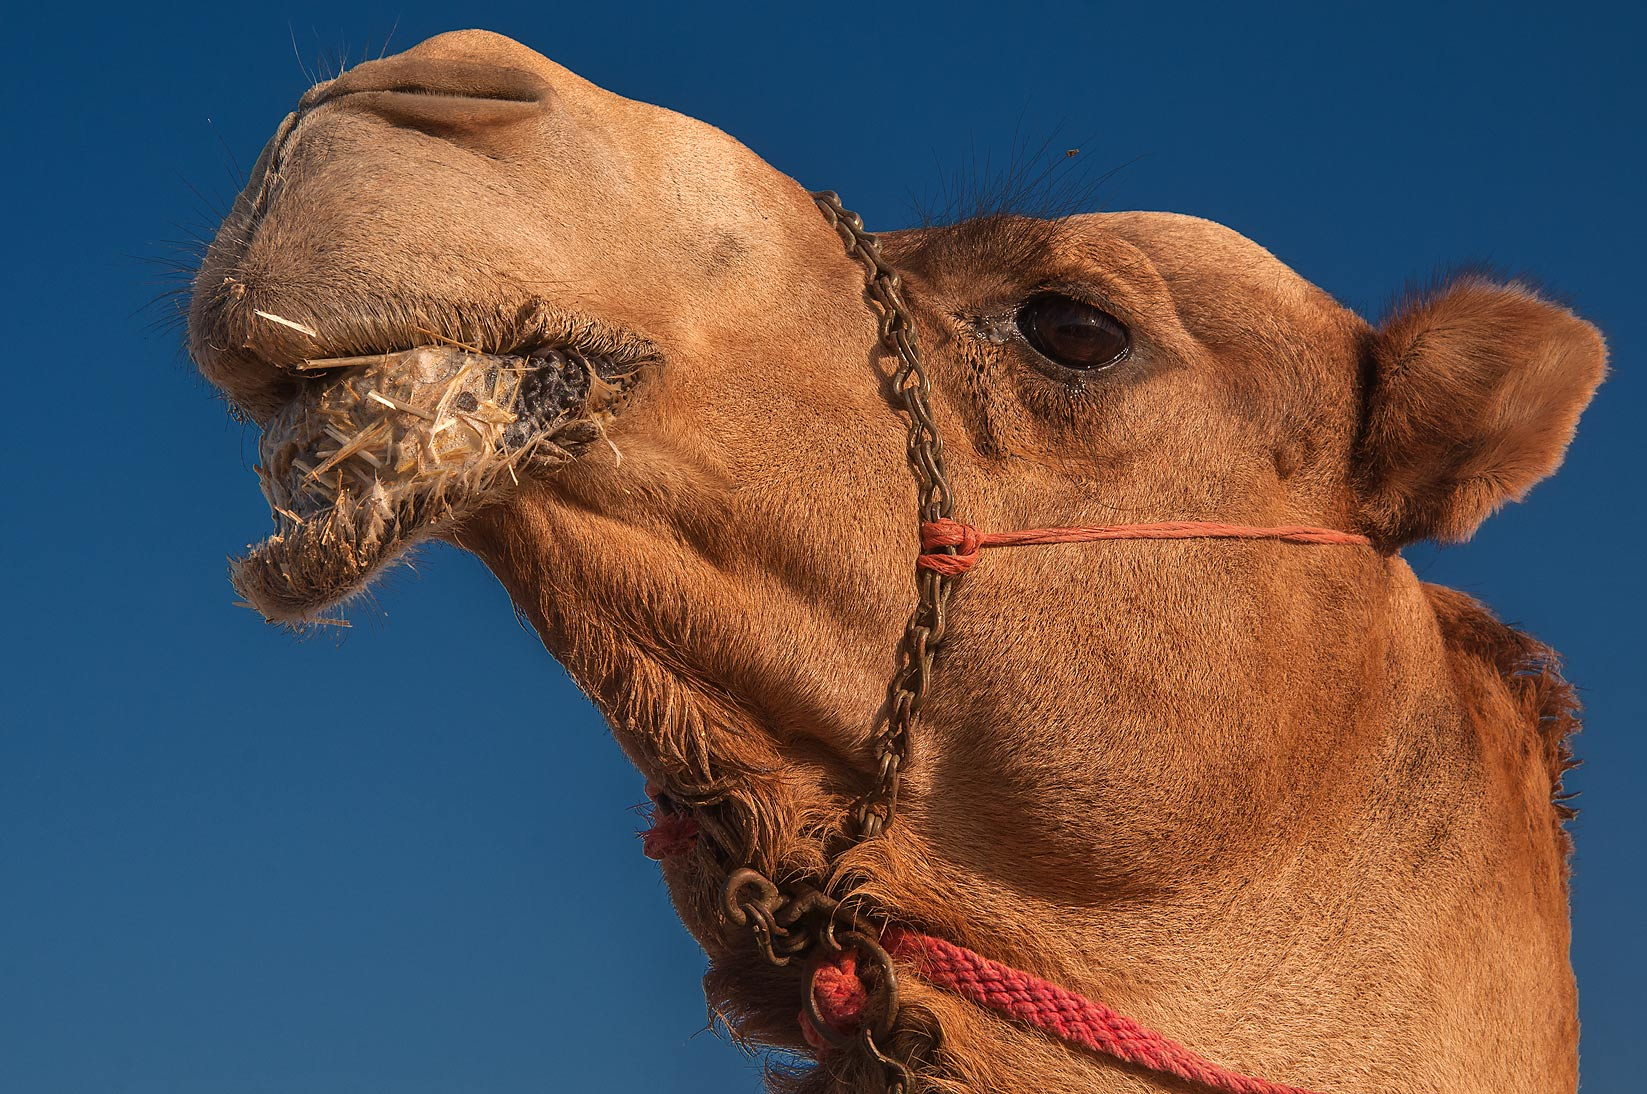 Camel with drooping lower lip in livestock market, Abu Hamour area. Doha, Qatar